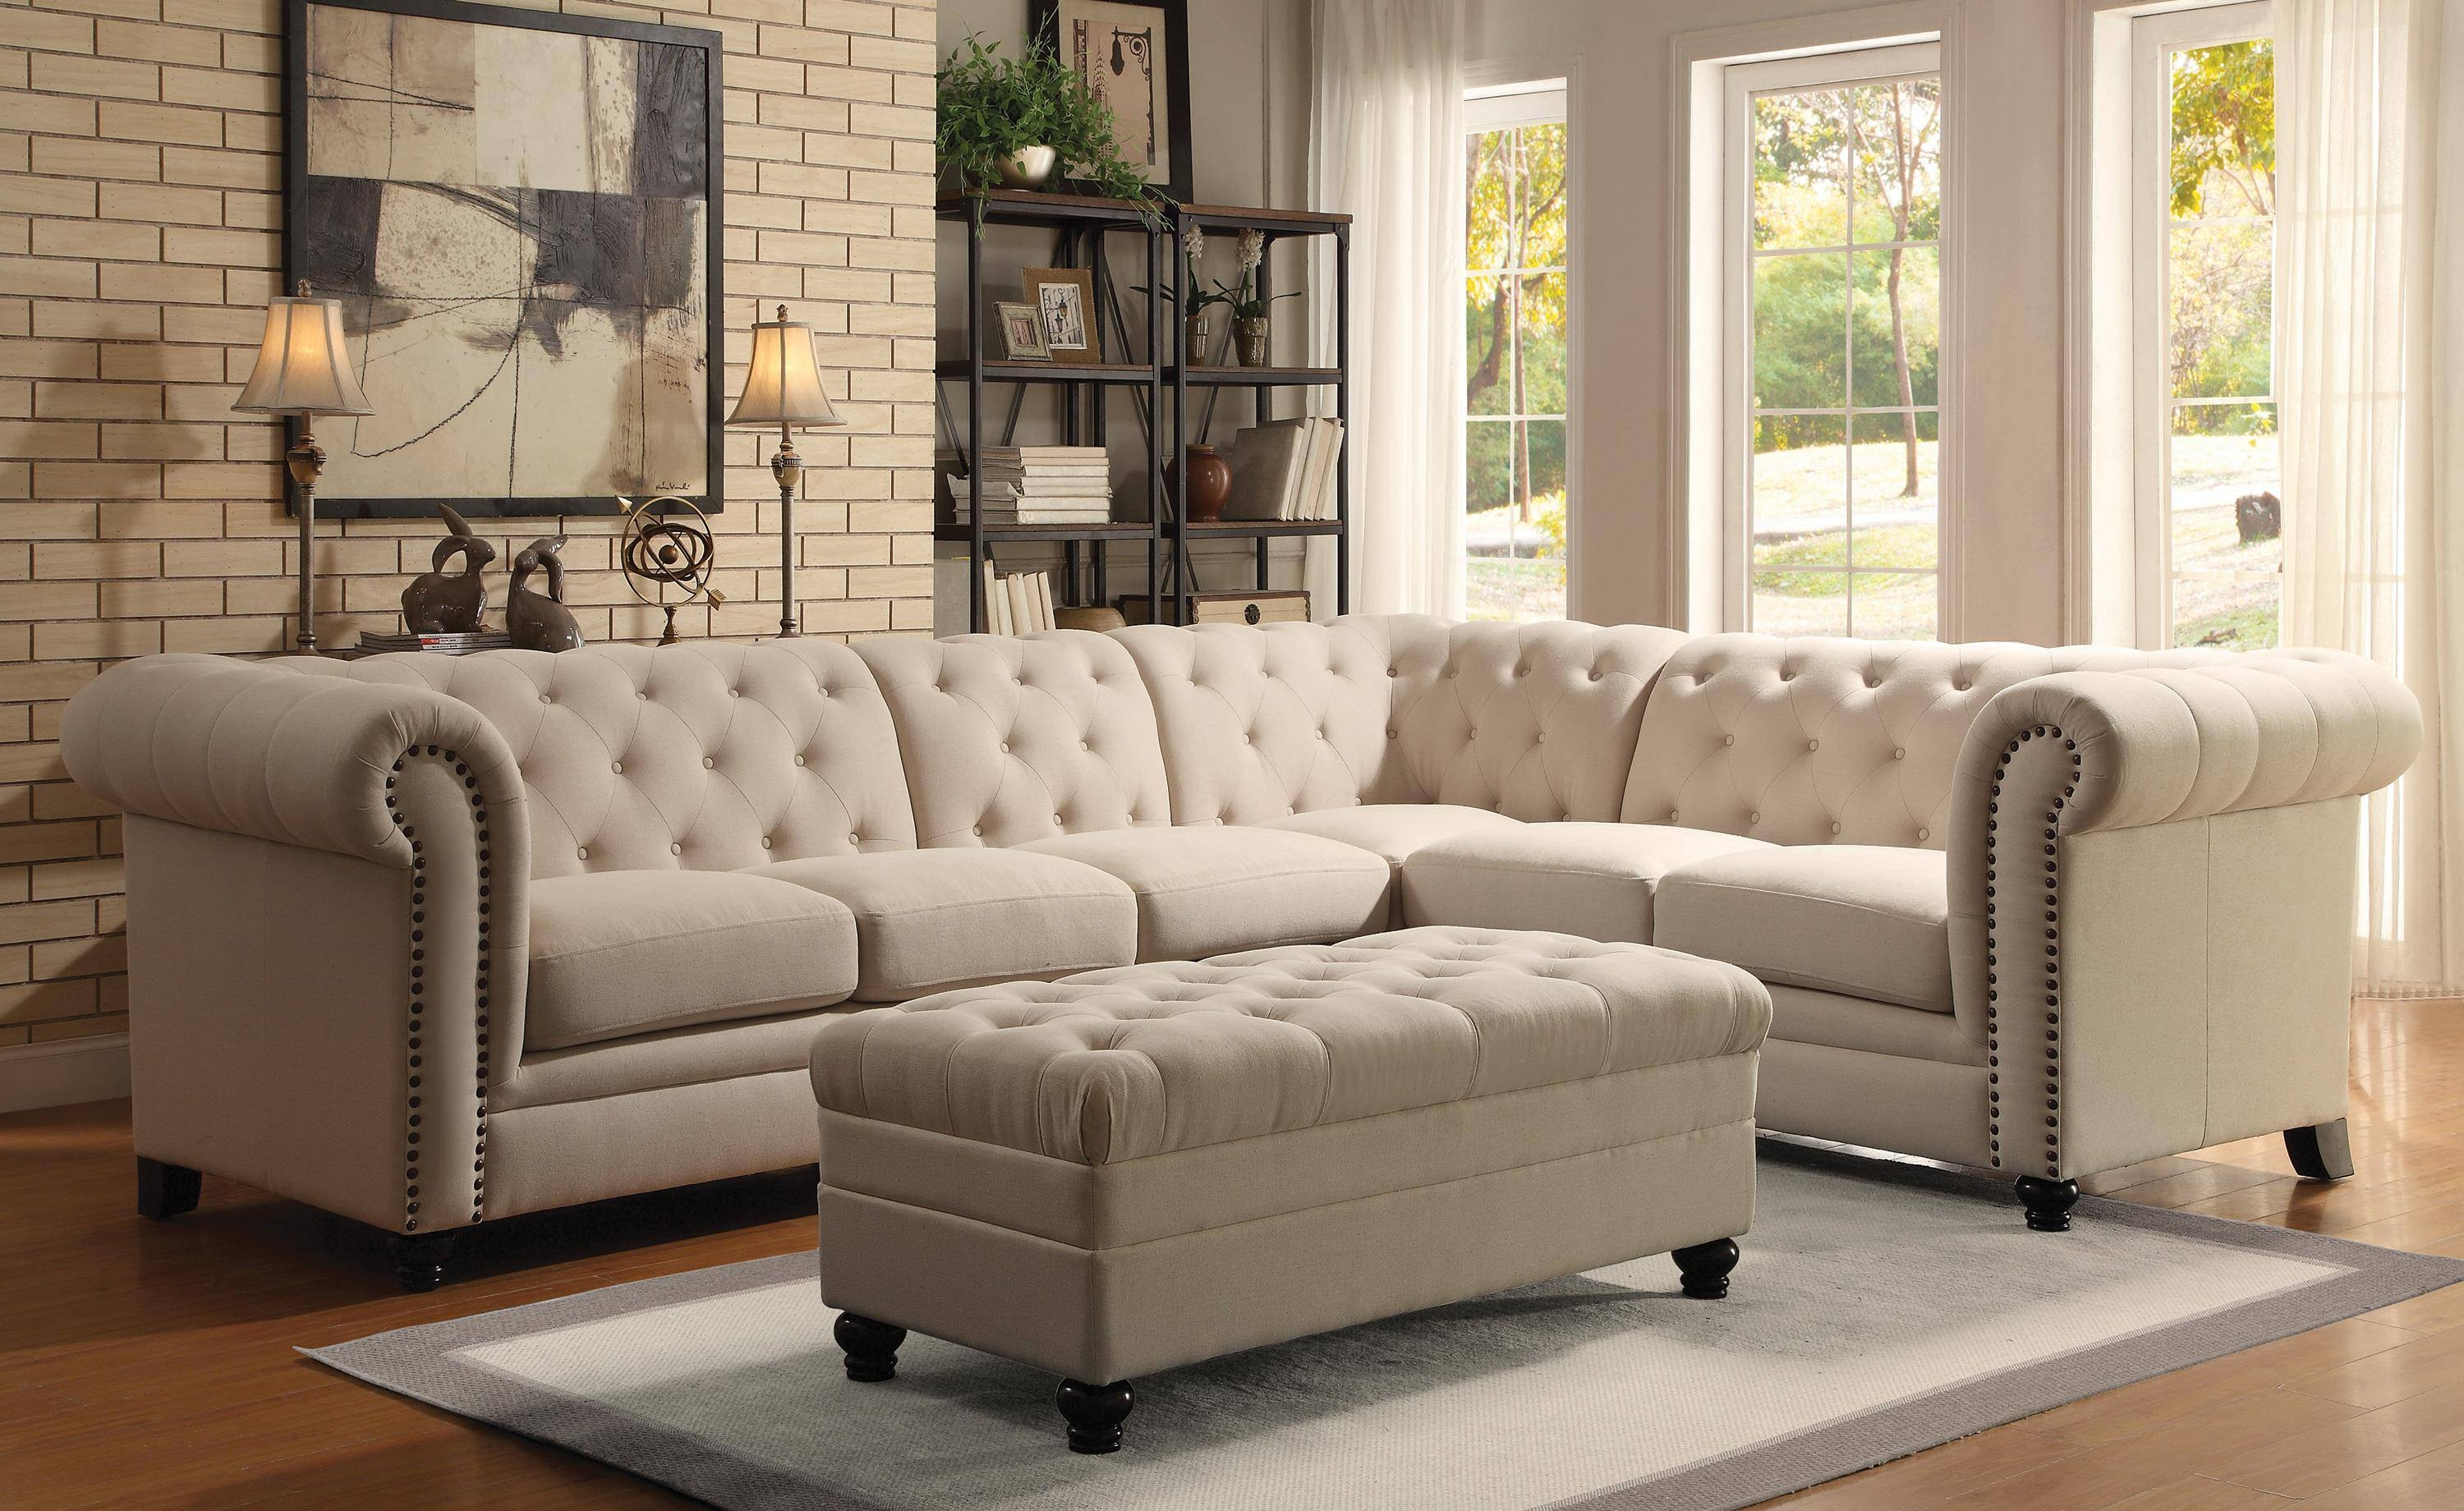 Sofa: Comfort And Style Is Evident In This Dynamic With Tufted in Tufted Sectional Sofa Chaise (Image 13 of 25)